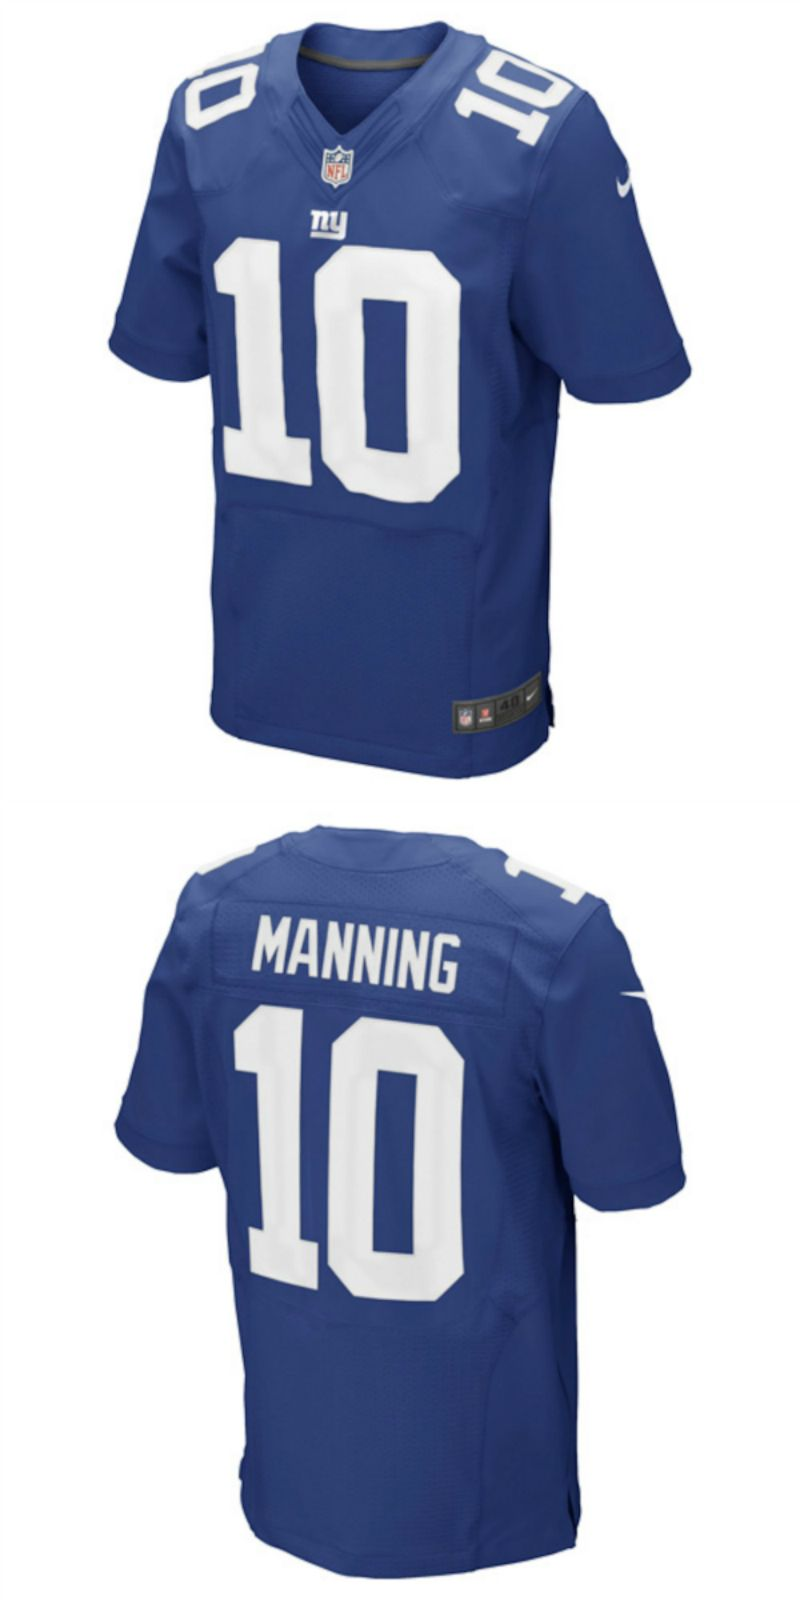 check out b8d6f 8a459 UP TO 70% OFF. Eli Manning New York Giants Nike Elite Jersey ...